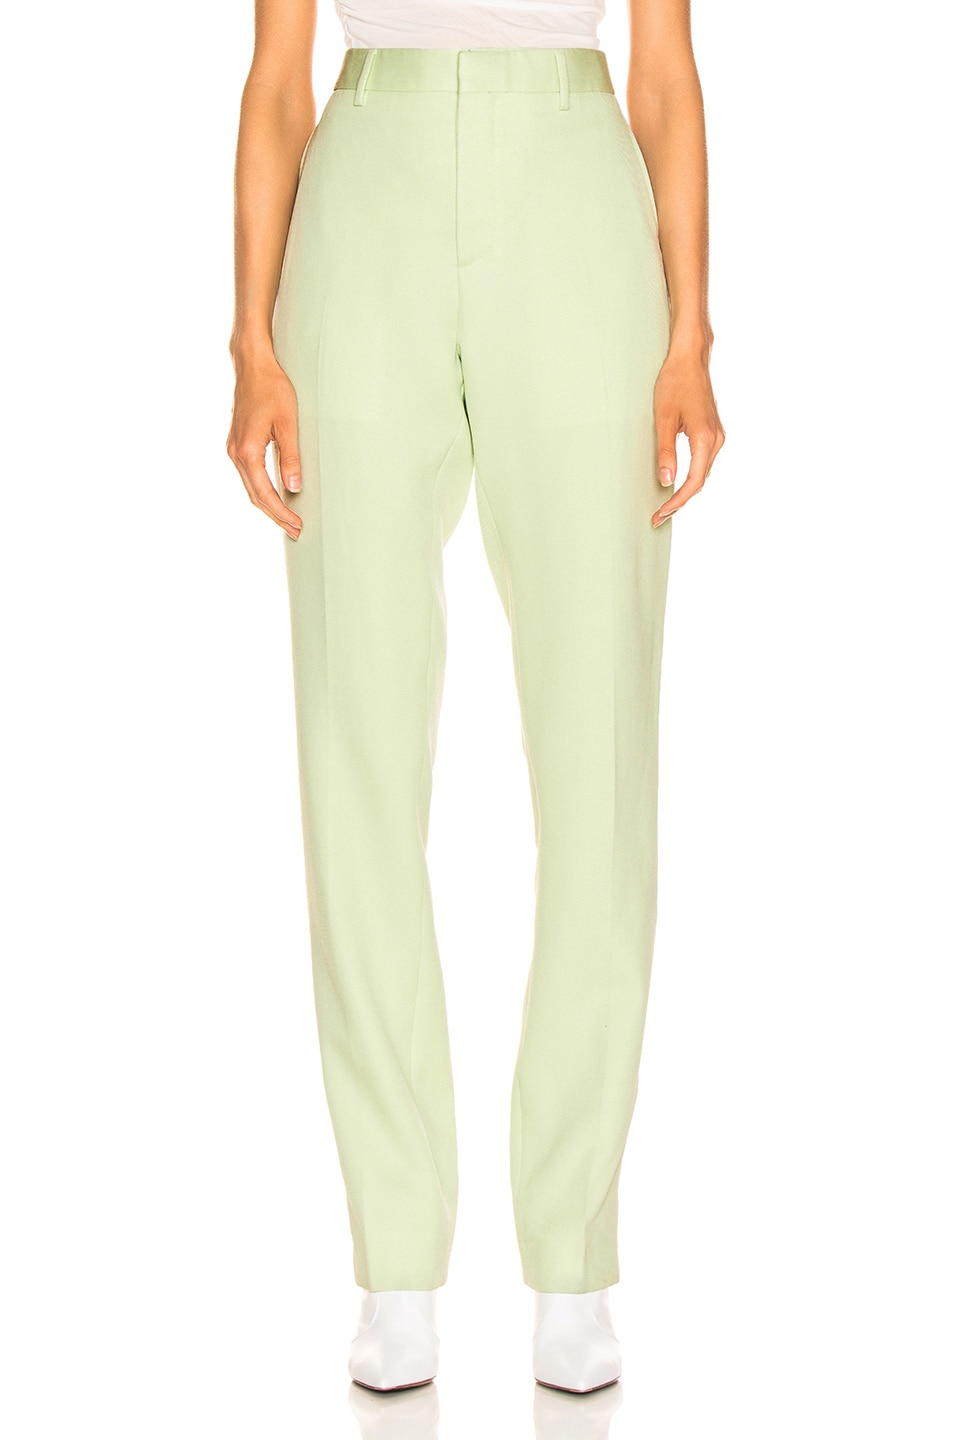 Image 2 of CALVIN KLEIN 205W39NYC Wool Twill Uniform Pant in Arcadian Green & Burgundy & Ecru